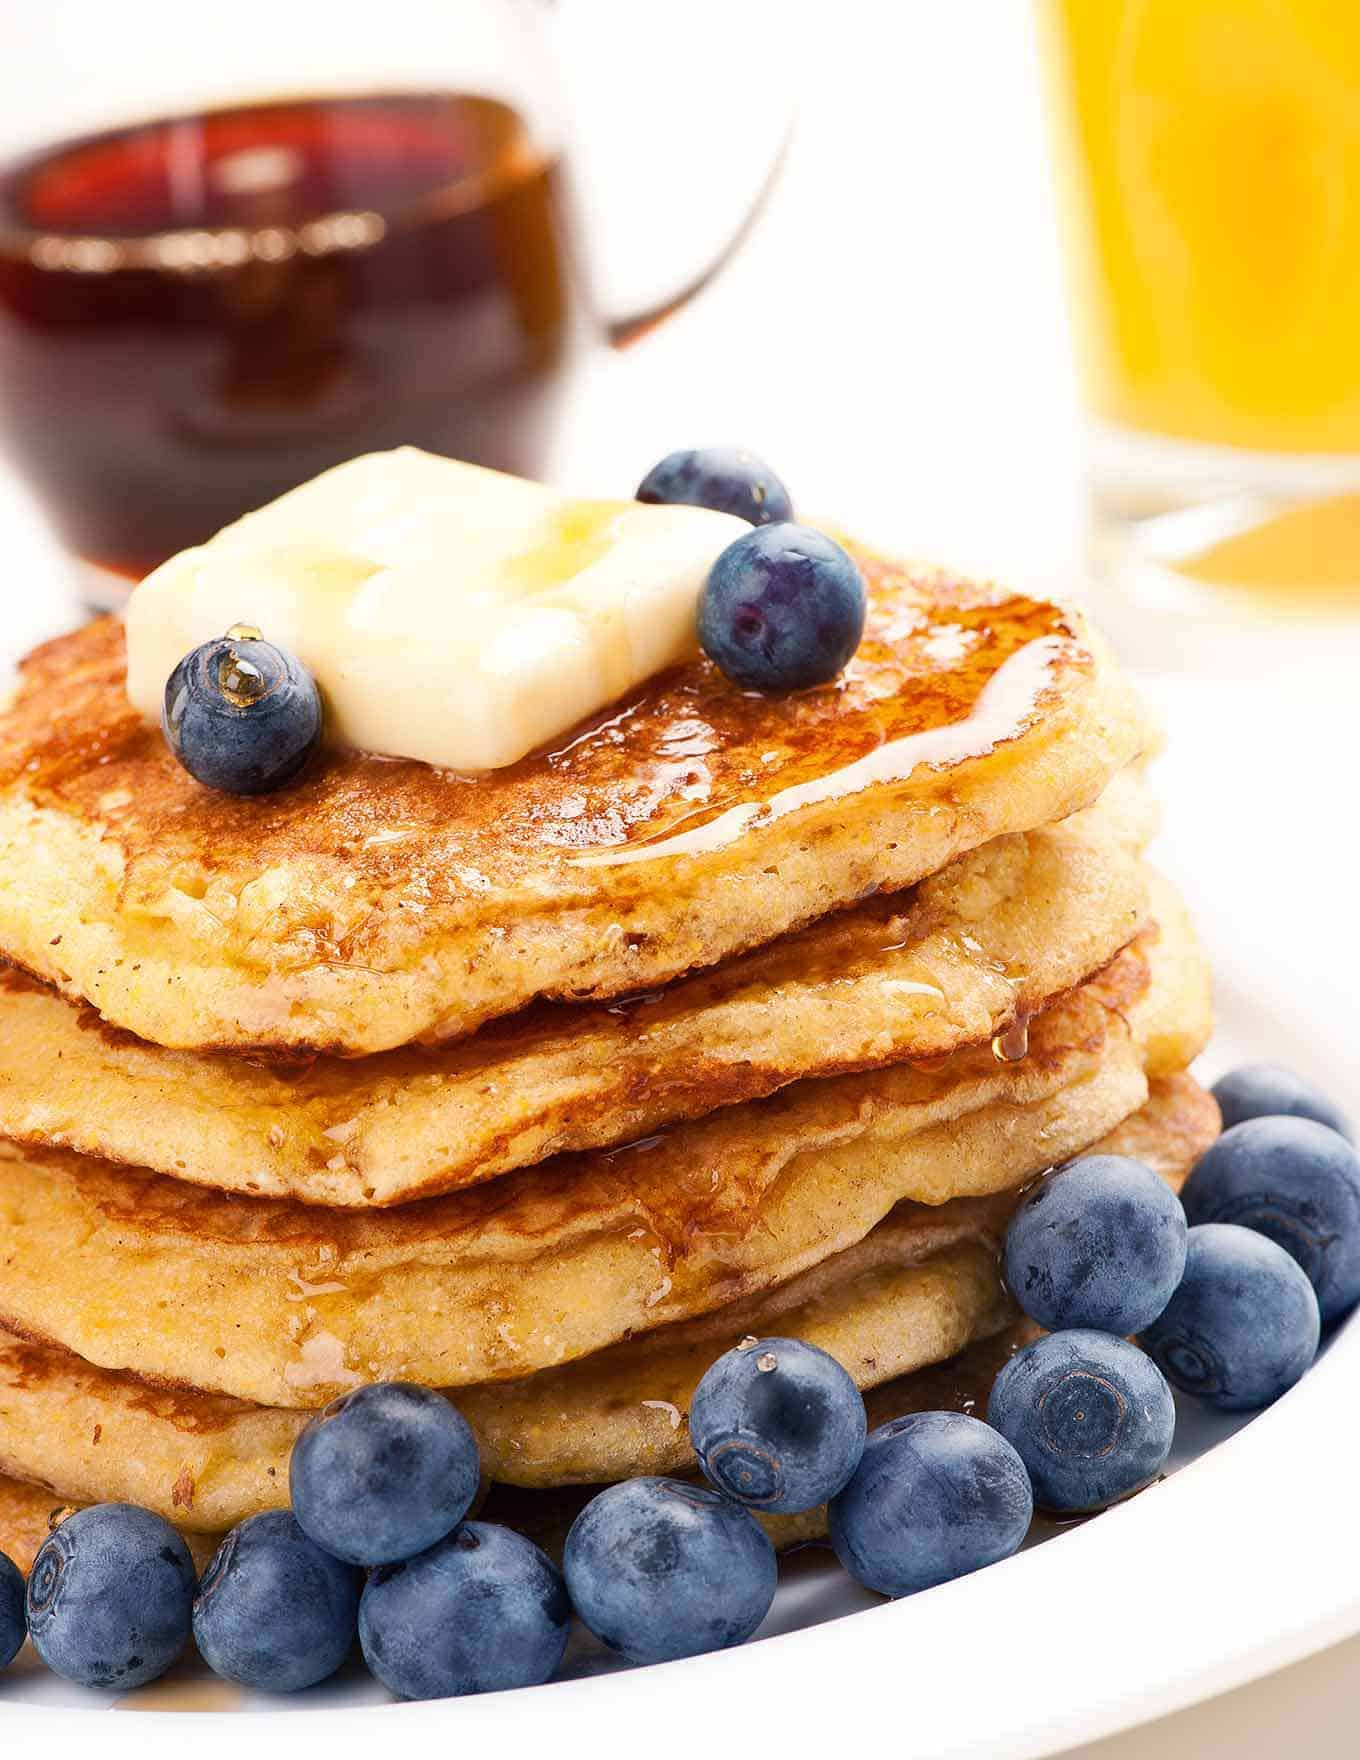 A stack of cornmeal pancakes on a plate topped with a pat of butter, maple syrup and fresh blueberries.